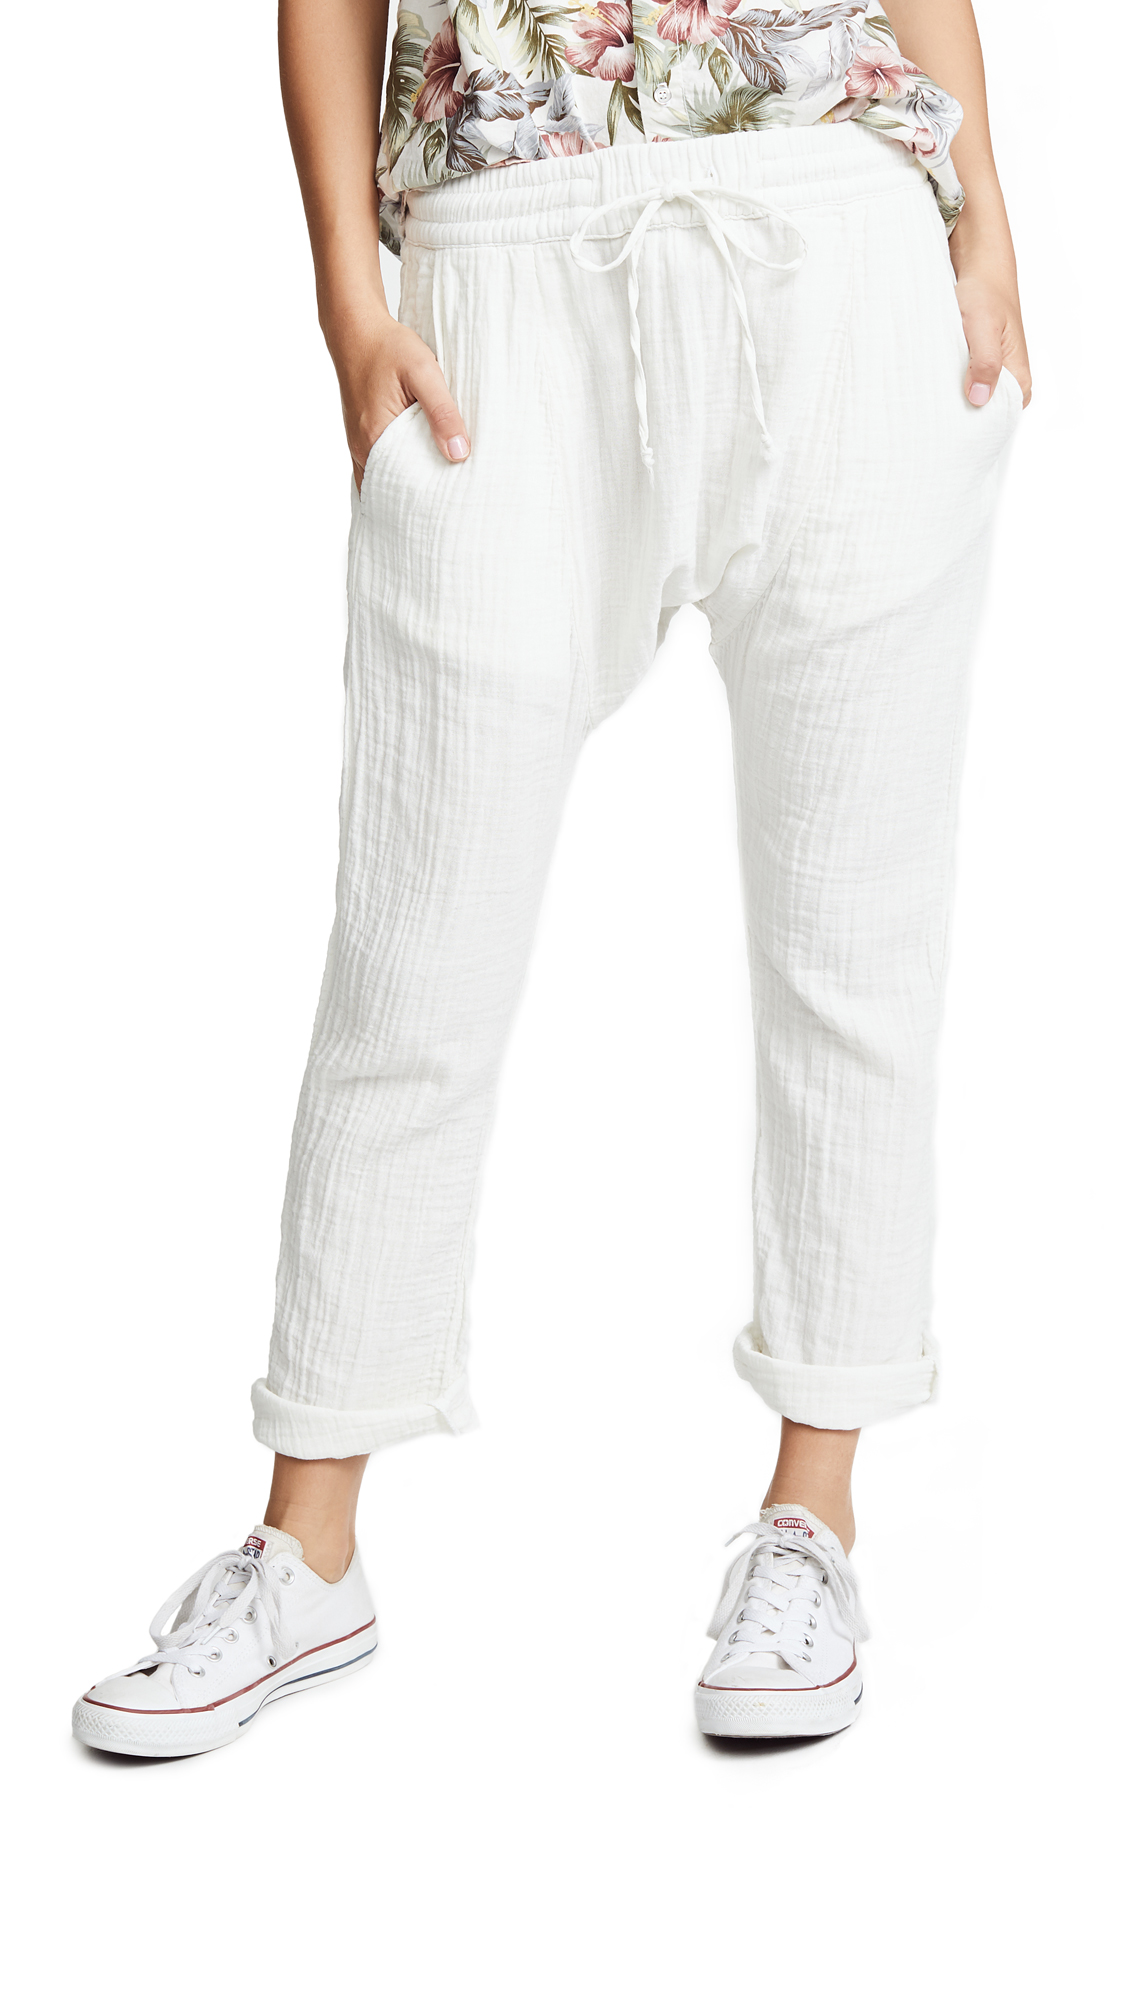 NSF Zion Sweatpants In Soft White